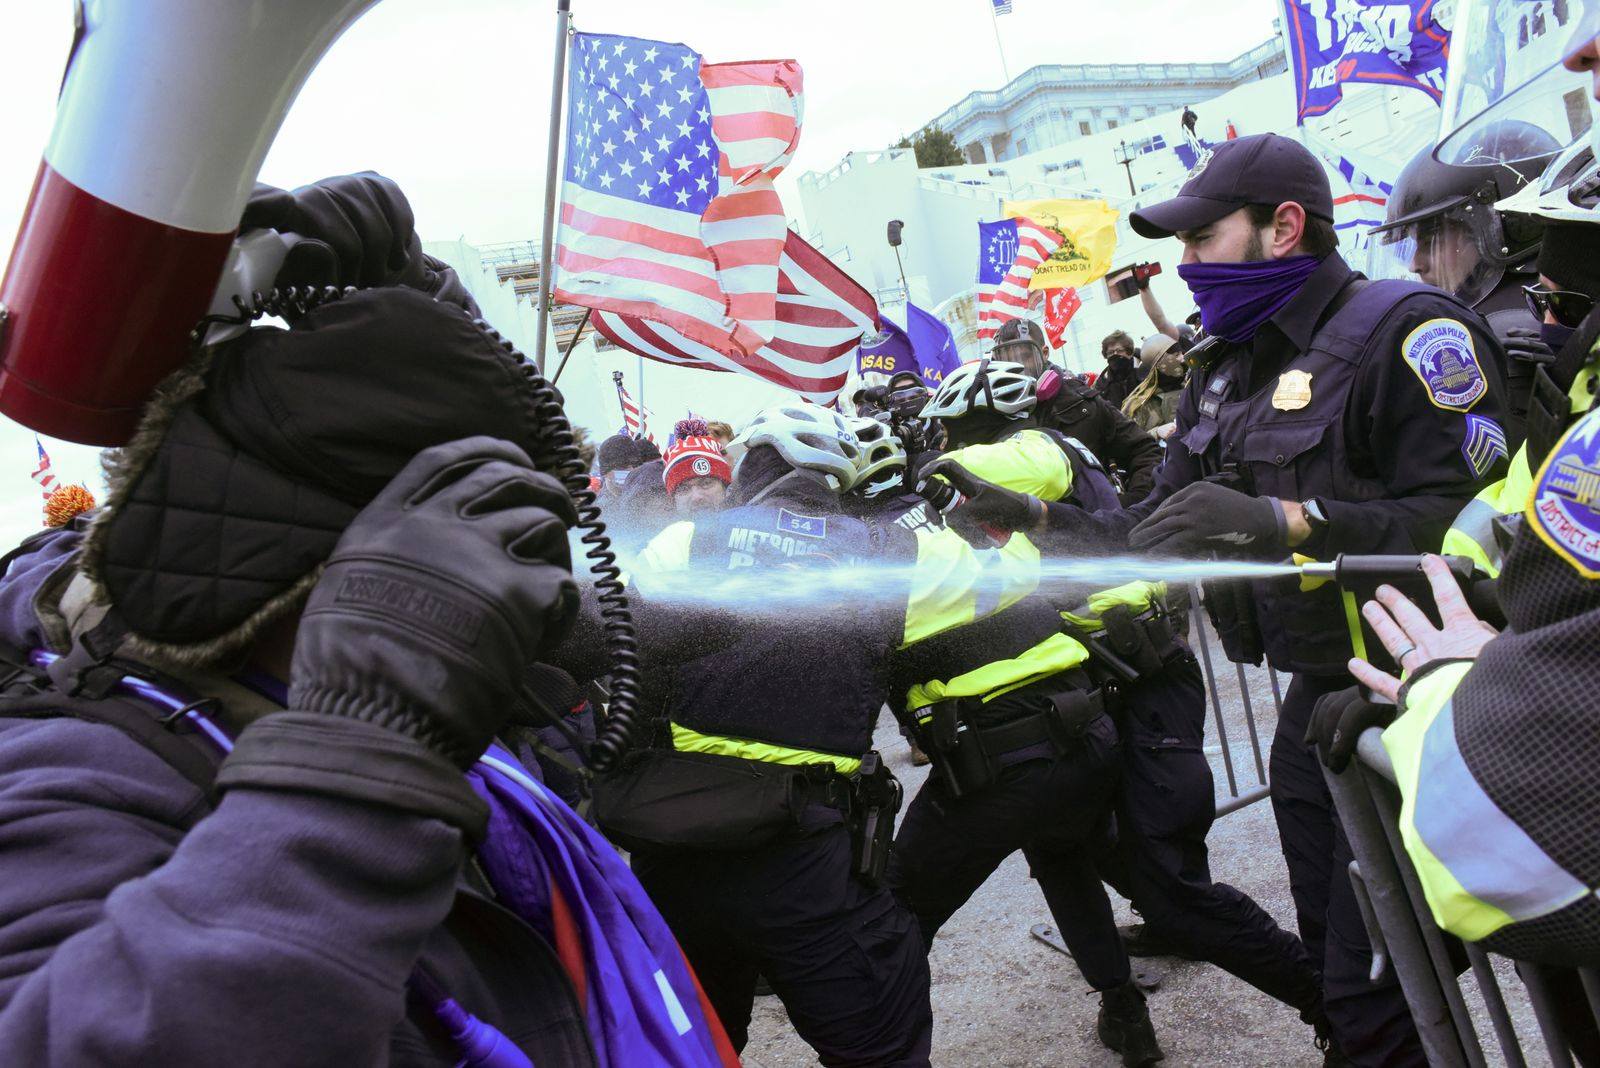 Supporters of U.S. President Donald Trump clash with police officers in front of the U.S. Capitol Building in Washington